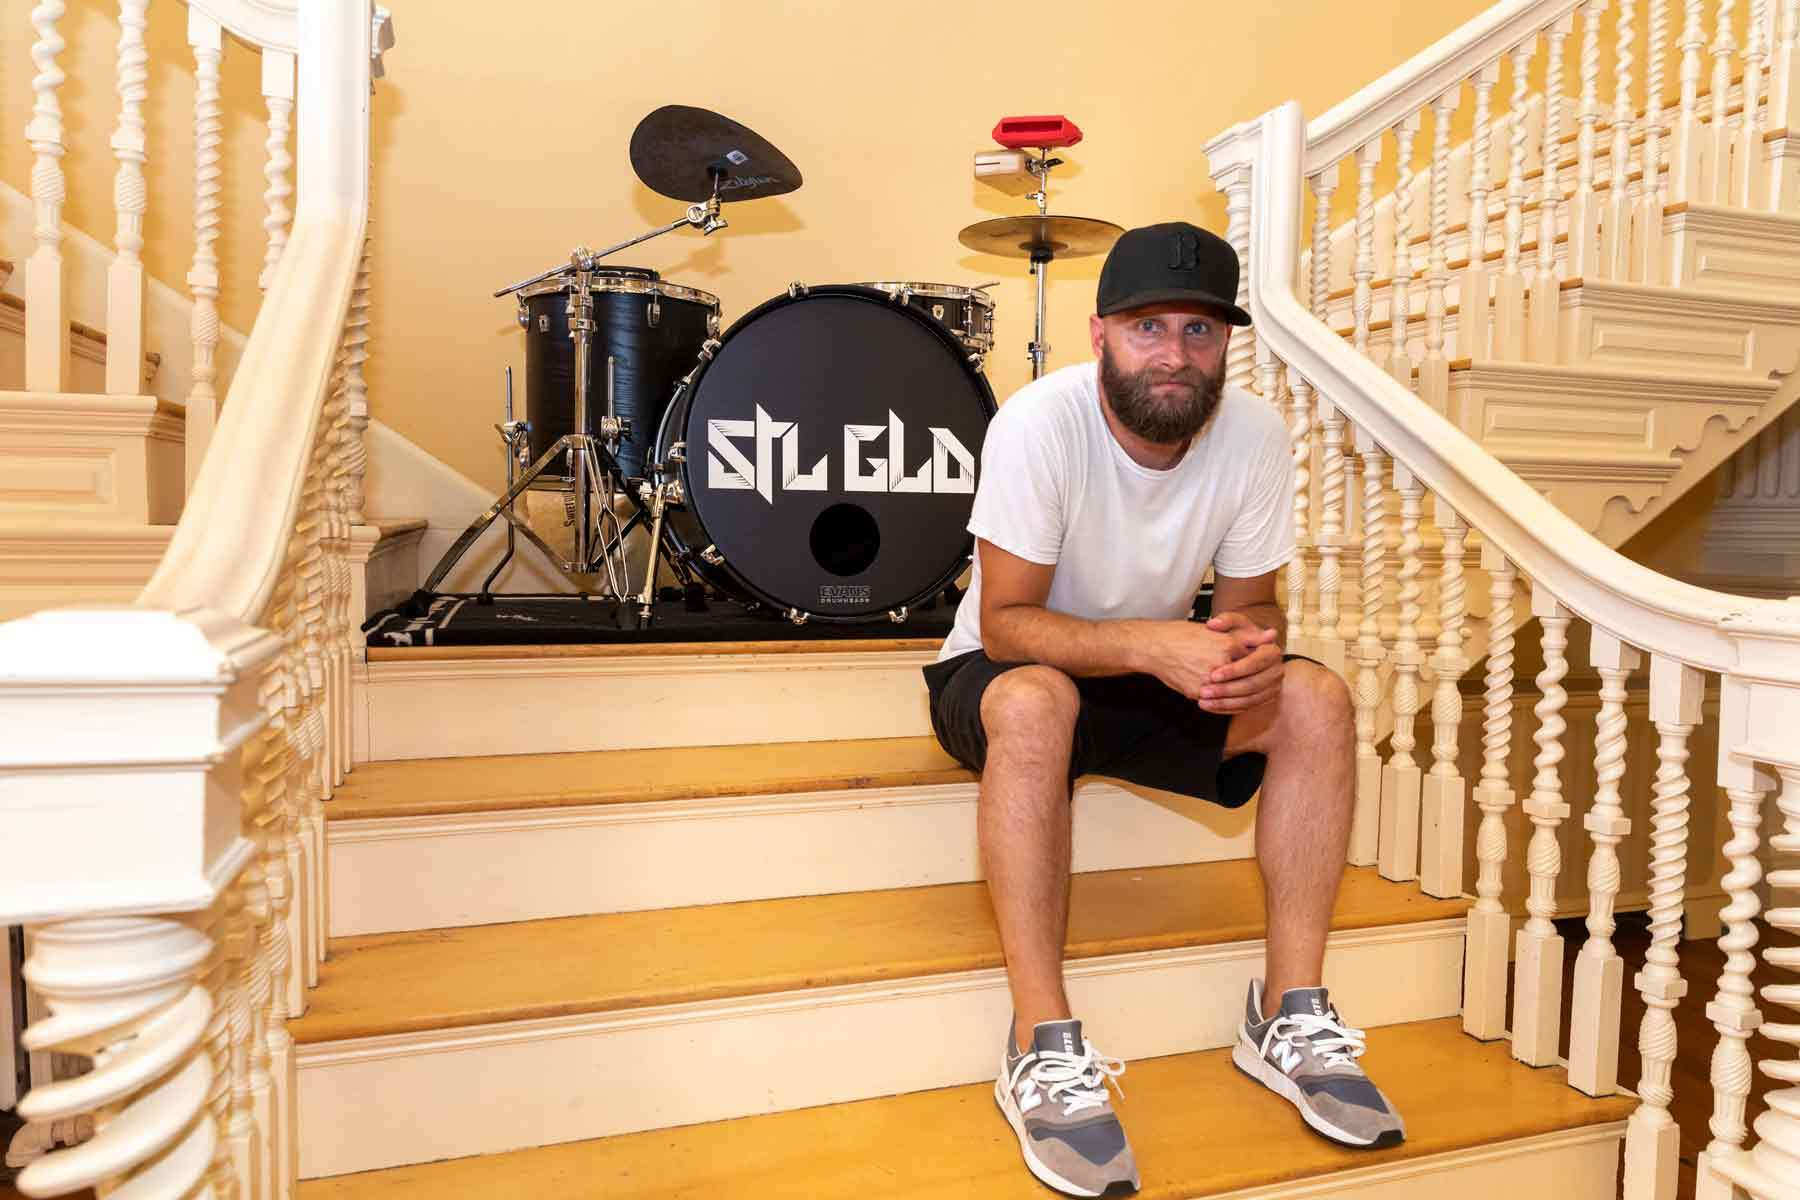 A member of Hip hop group STL GLD recently spent three days writing and recording a new song in Plummer Hall.